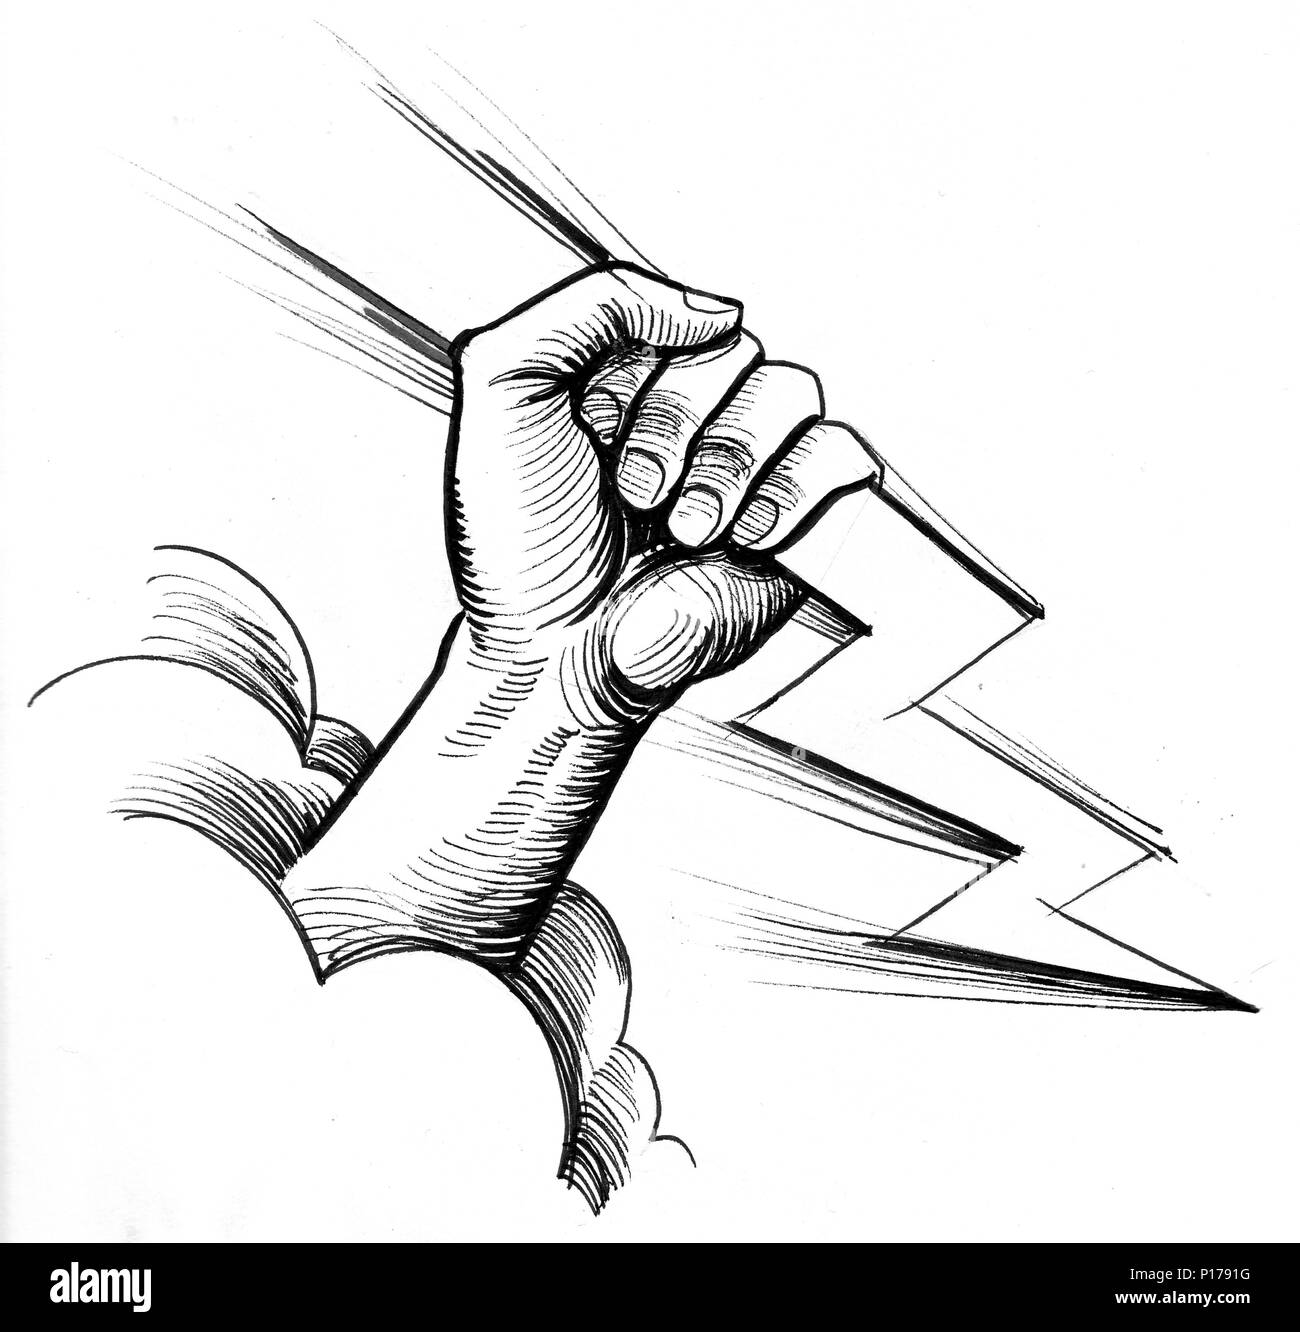 Hand With A Lightning Bolt Ink Black And White Illustration